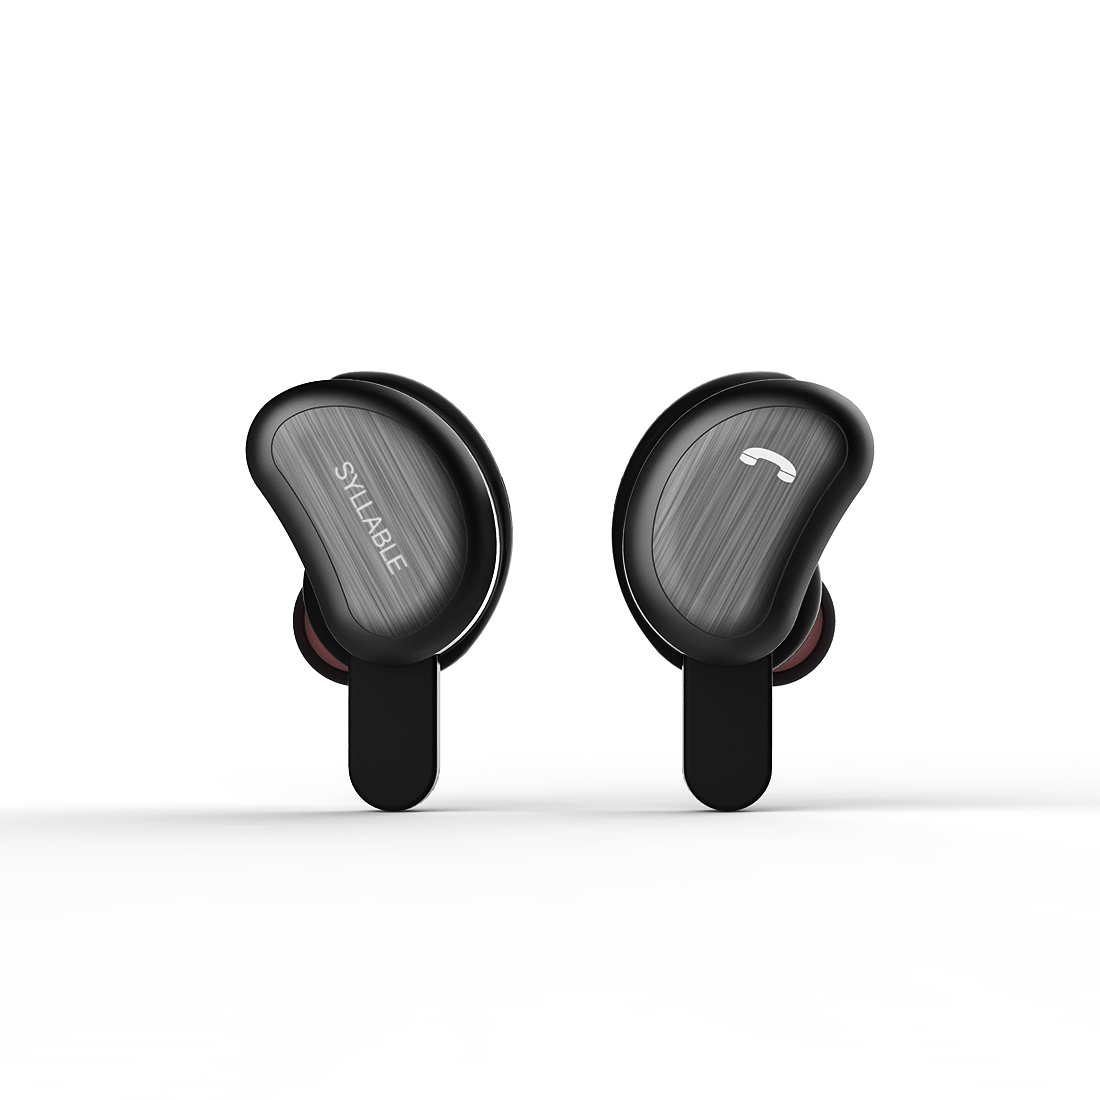 SYLLABLE D9 TWS Bluetooth Earphone Mini In Ear Wireless Earbuds Earphone with Mic Sport Invisible Headset Portable Power Bank